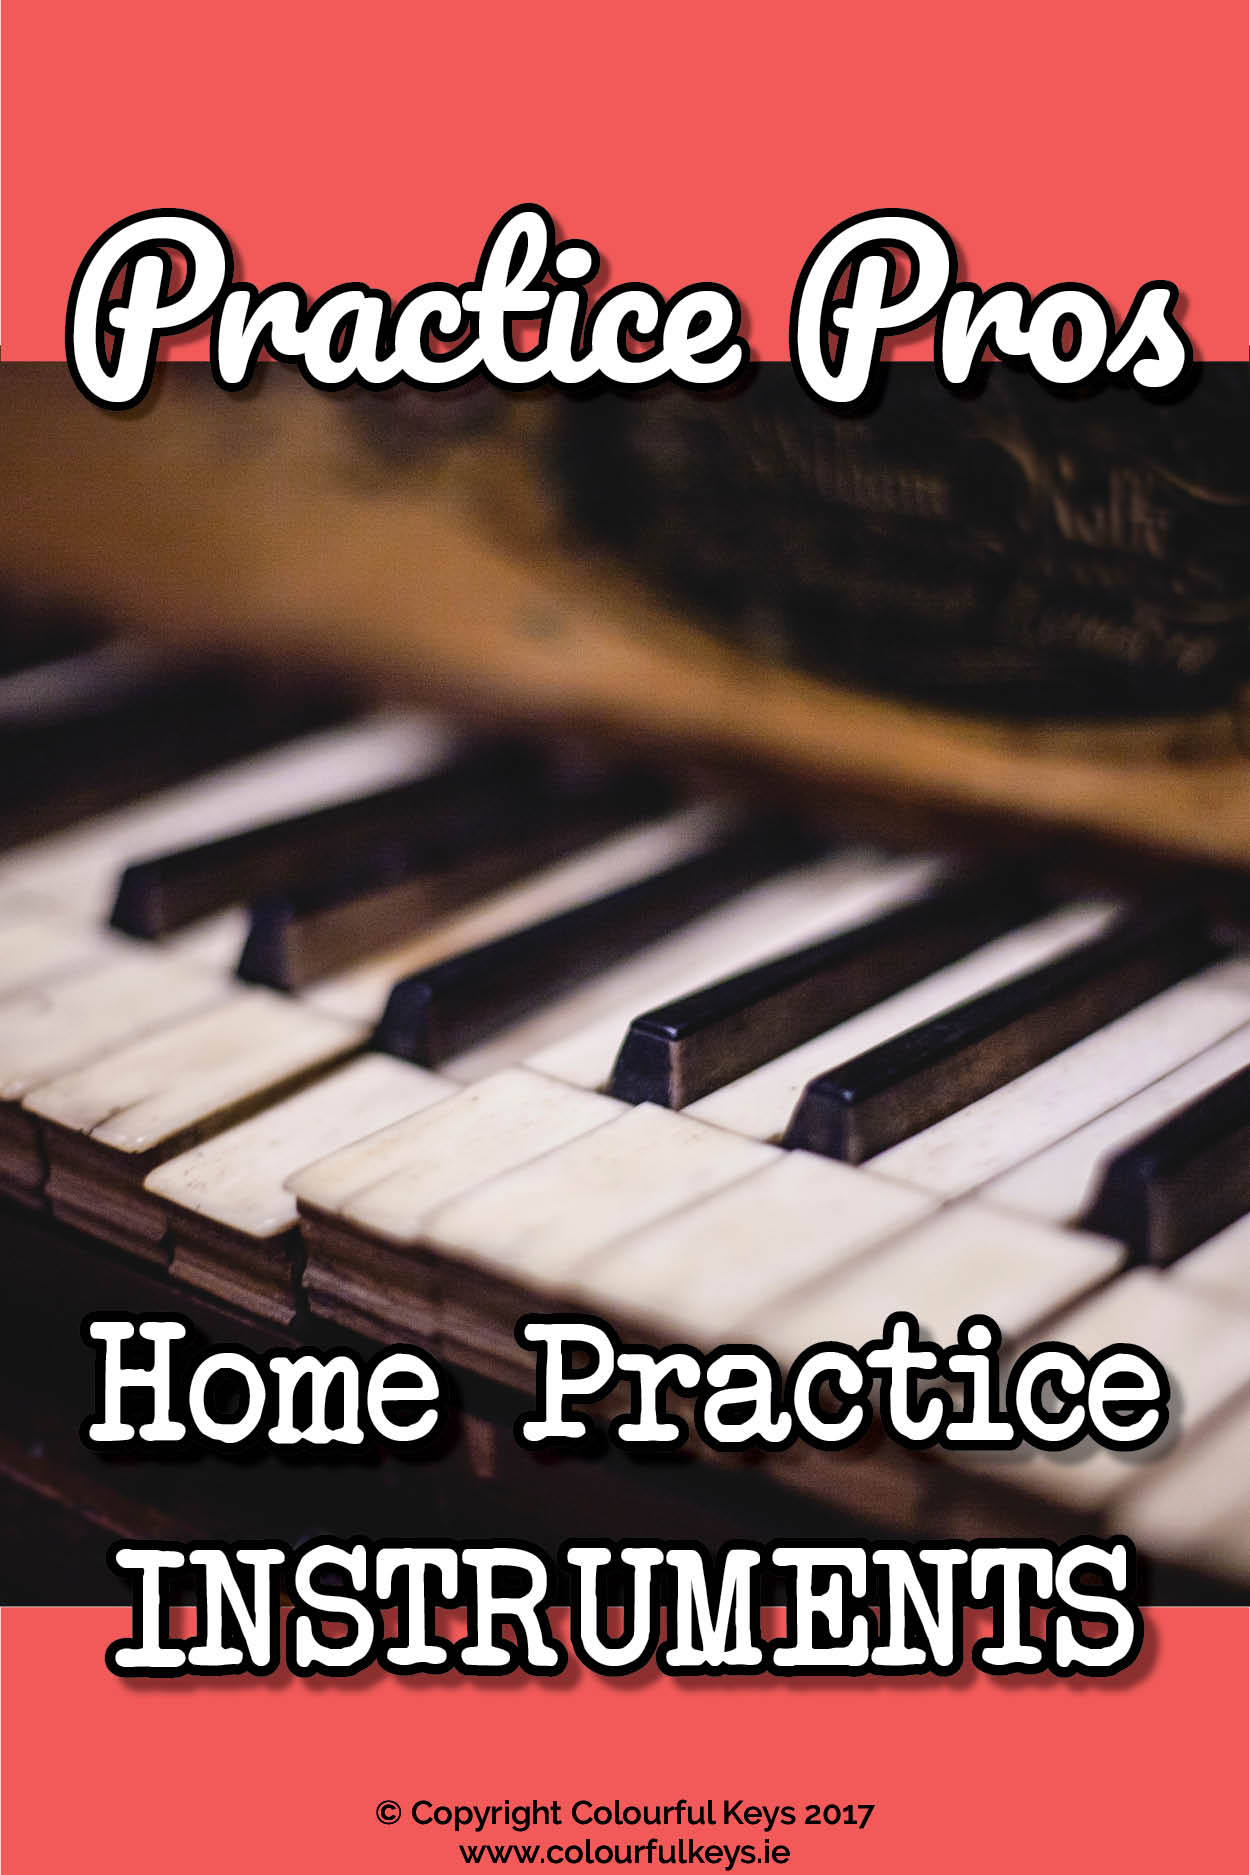 Make sure your students have a great practice instrument at home with these tips!